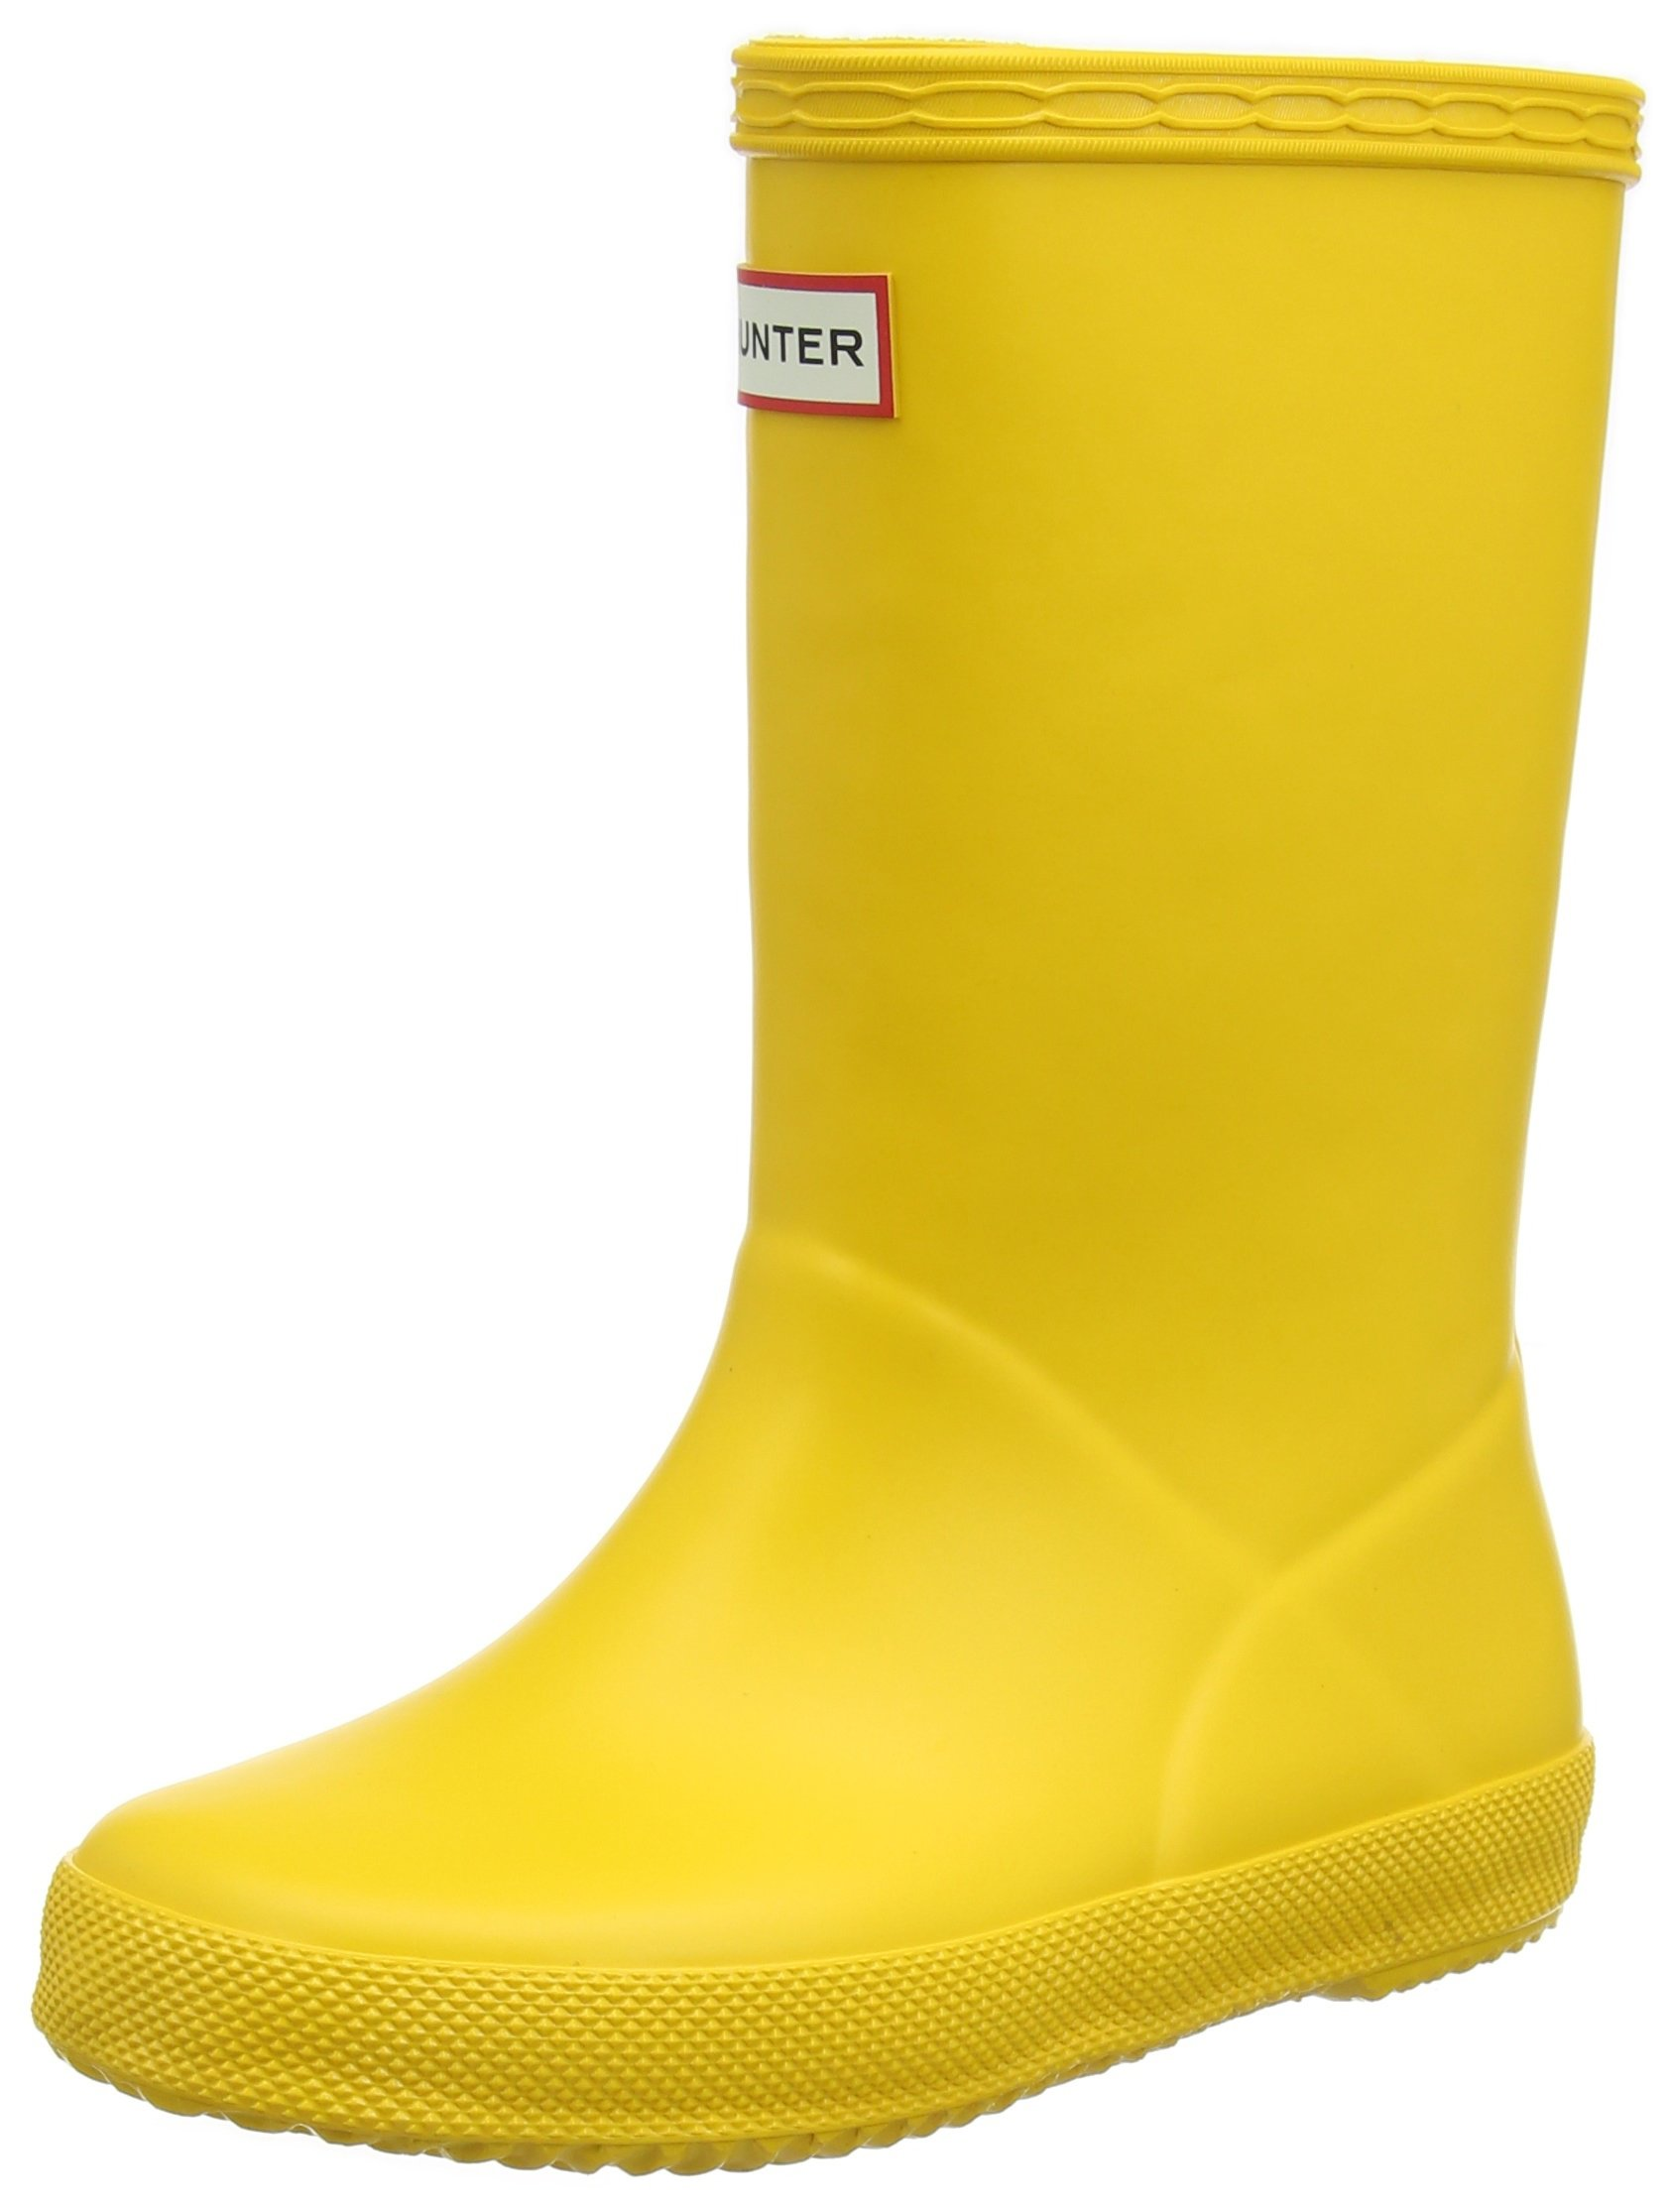 Hunters Boots First Classic Boot - Toddlers' Yellow, 8.0